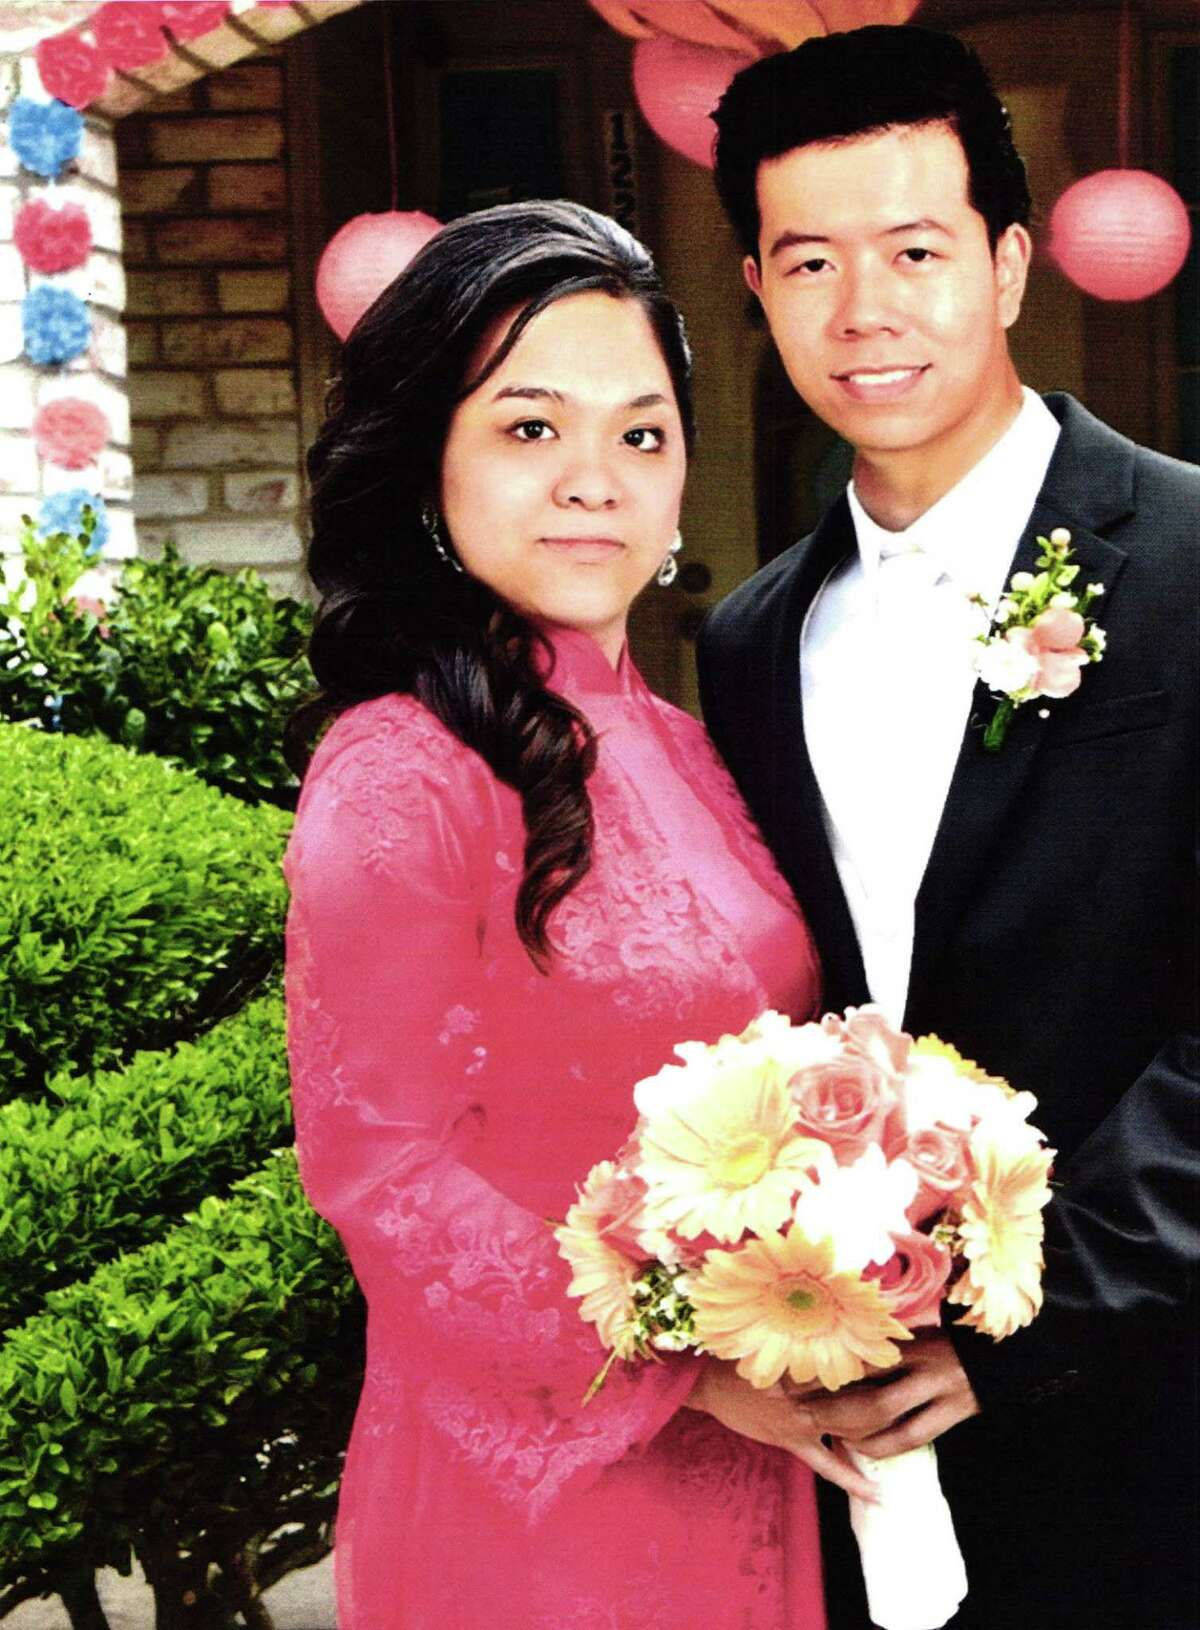 Photo from a wedding album of Khanh Phuong Nguyen and Tam Cong Le. Photo albums were submitted as evidence by federal prosecutors.